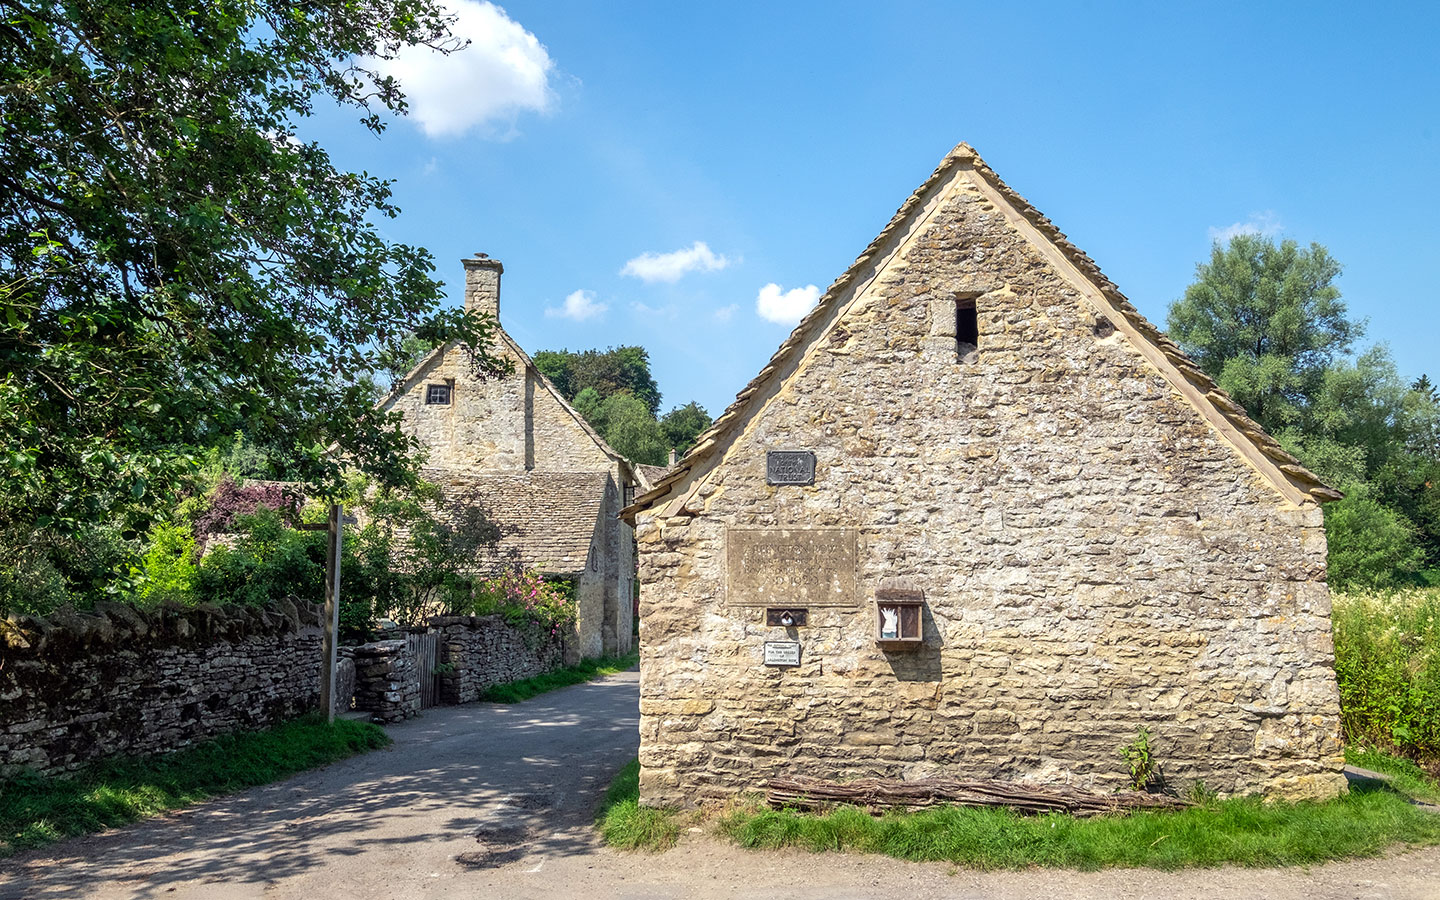 The entrance to Arlington Row in Bibury, Cotswolds